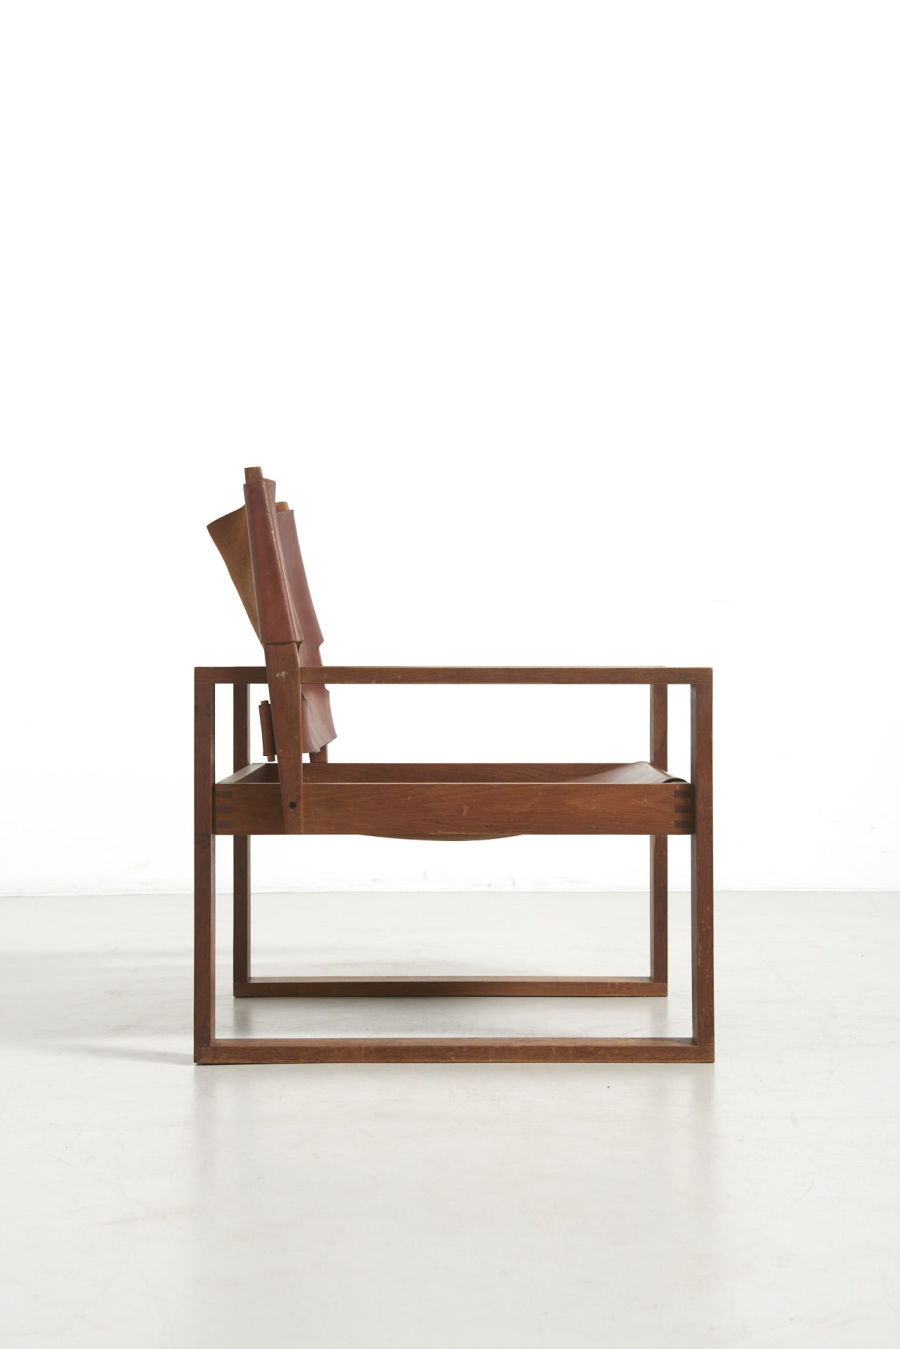 modestfurniture-vintage-2486-svend-fradsen-safari-chair-hugo-fradsen03